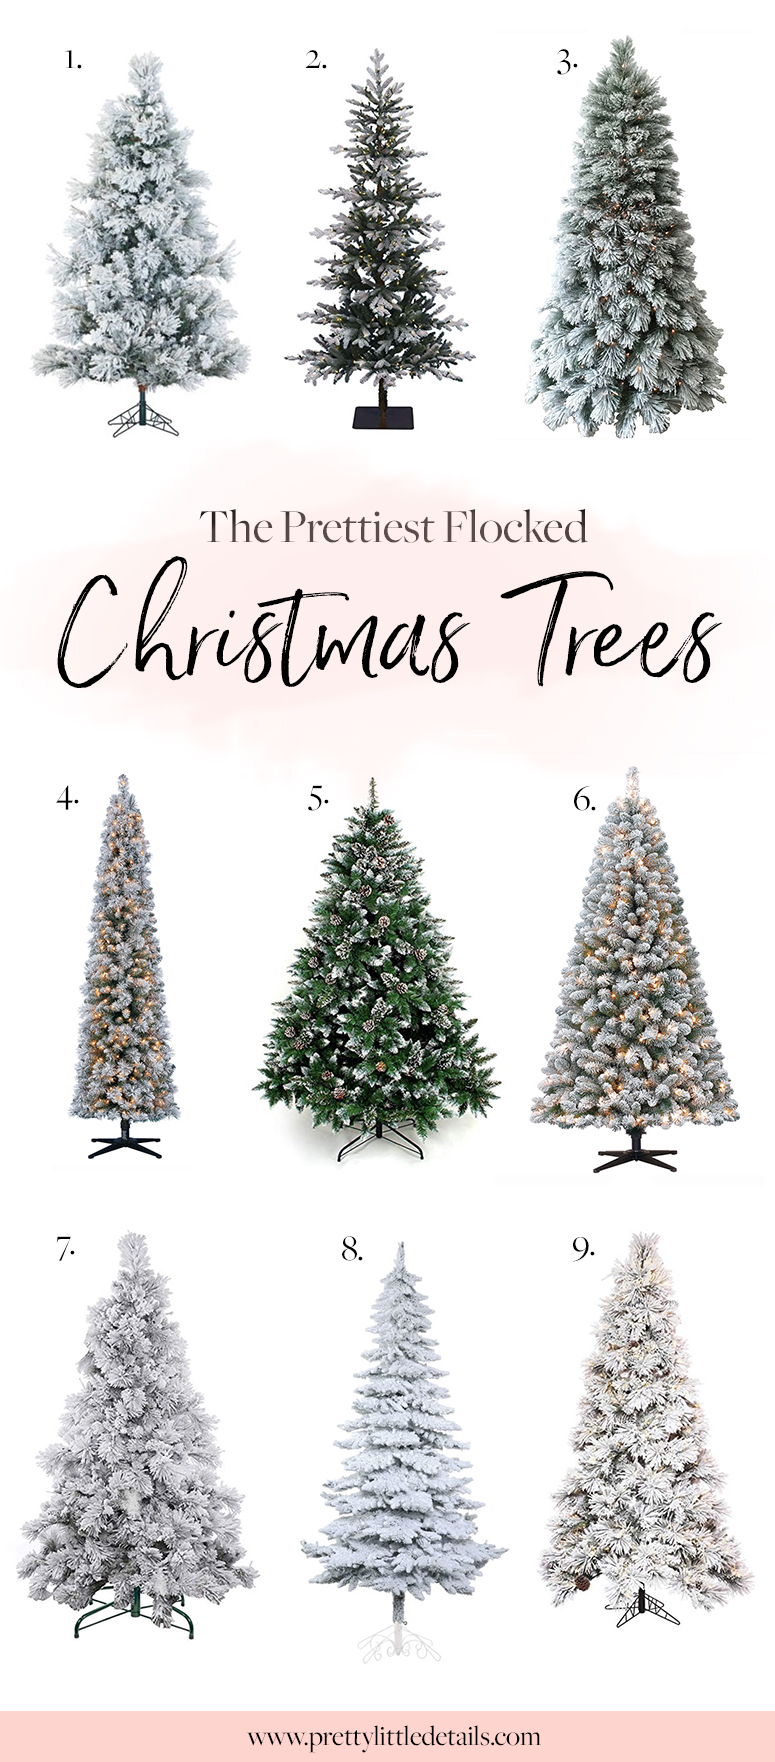 The best flocked Christmas trees.